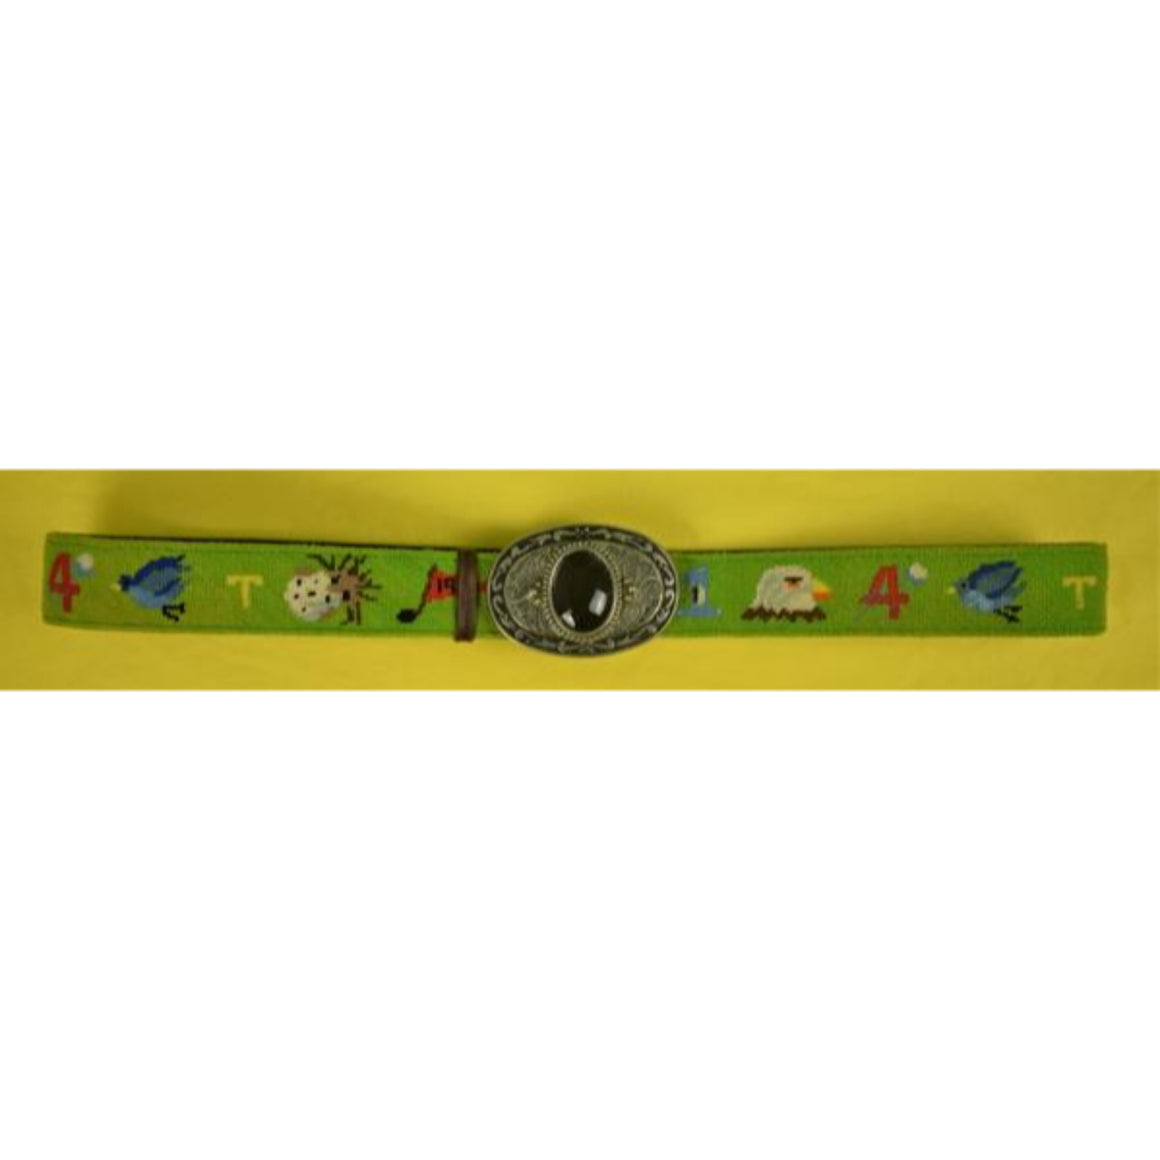 'Custom '19th' Hole Green Needlepoint Belt w/ Western Buckle'